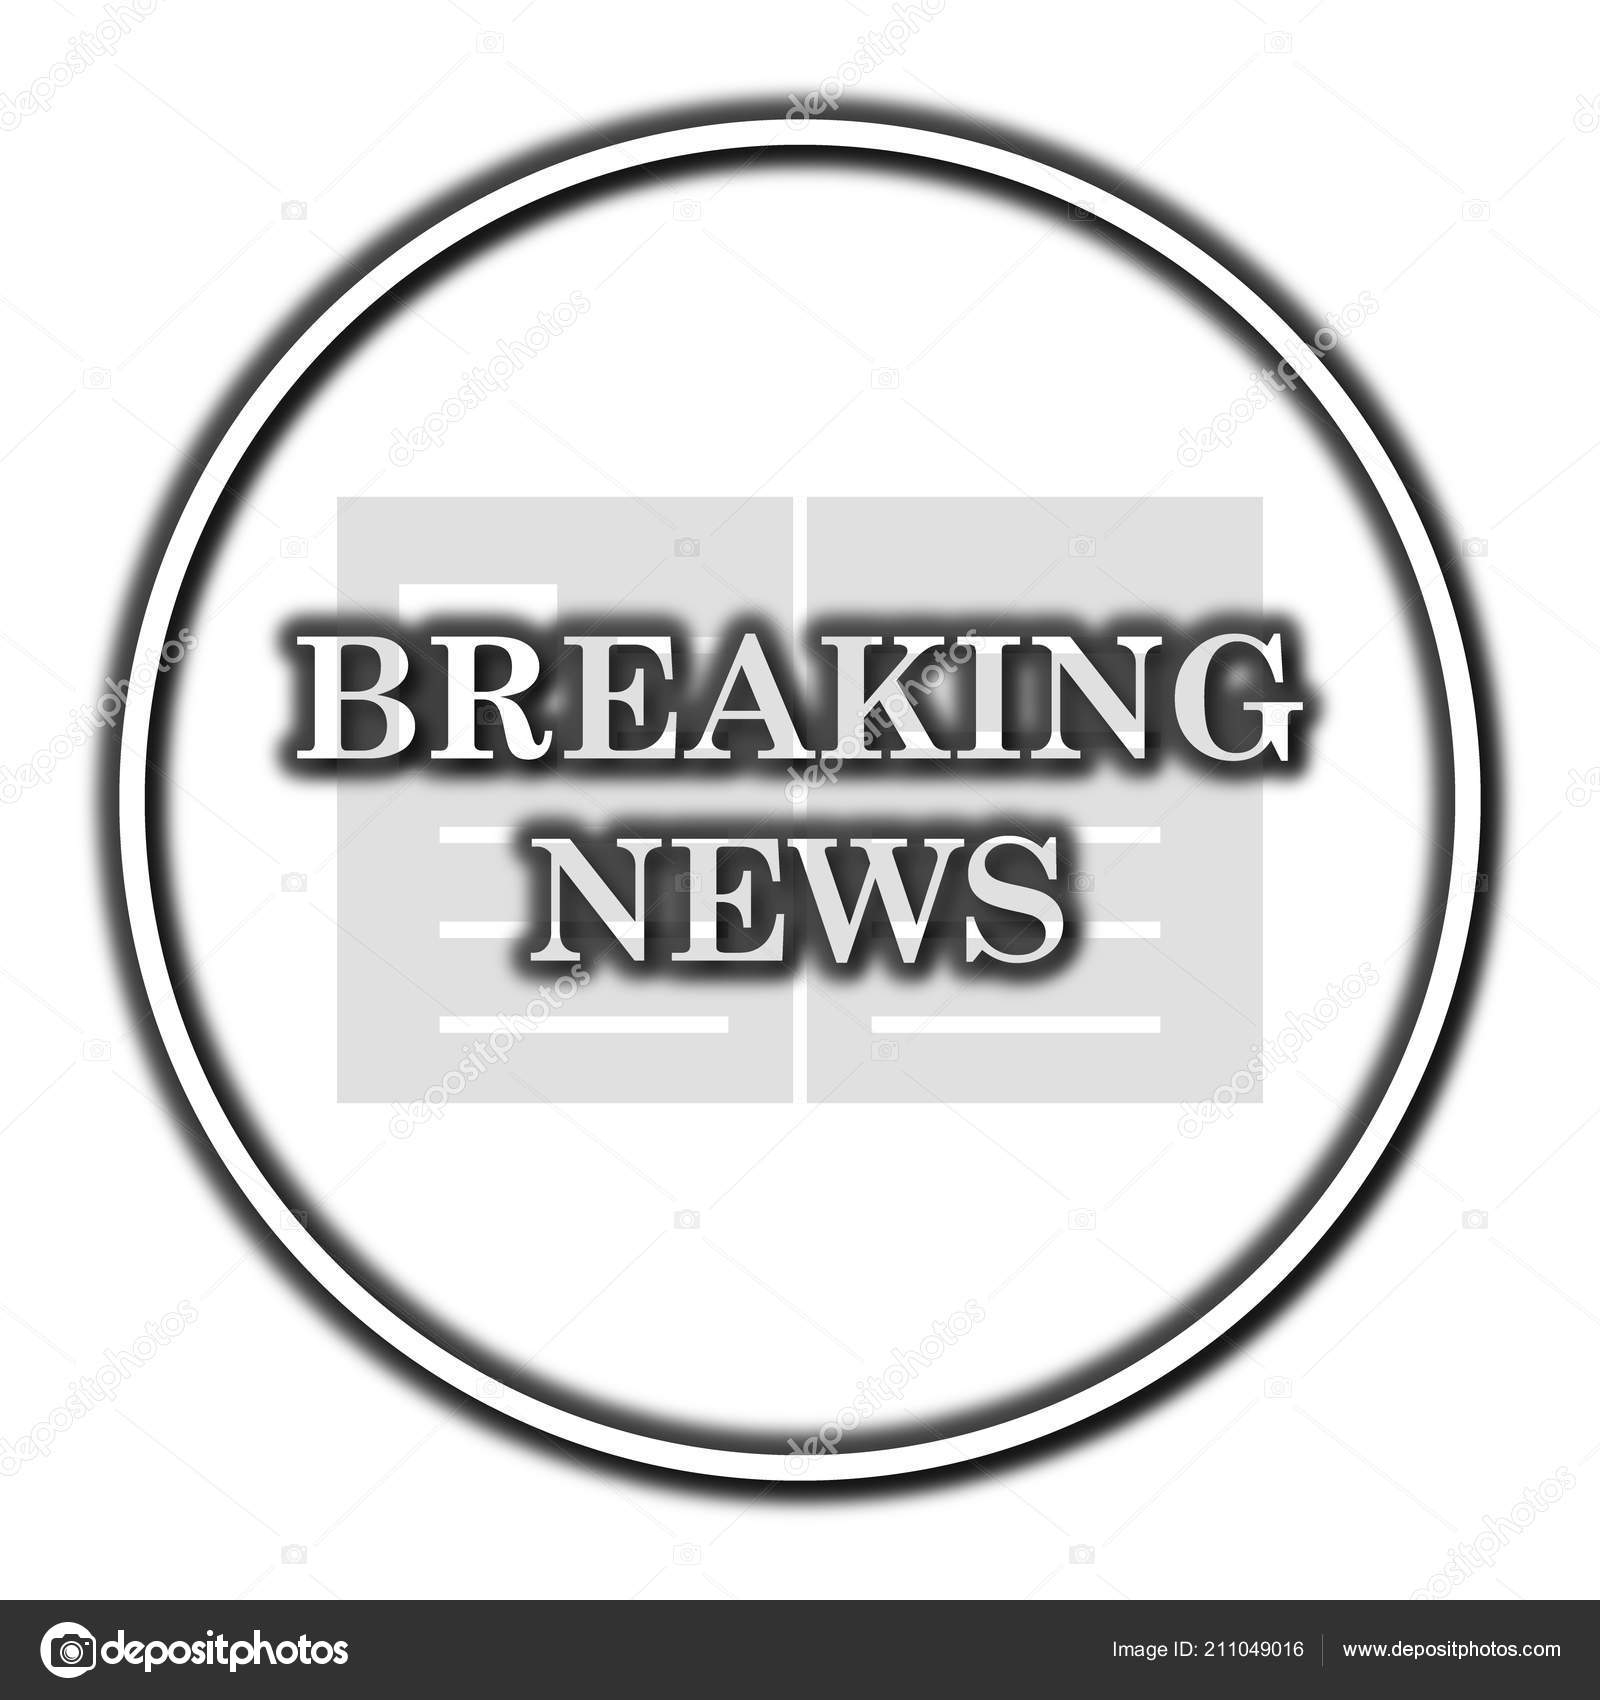 Breaking news icon — Stock Photo © valentint #211049016